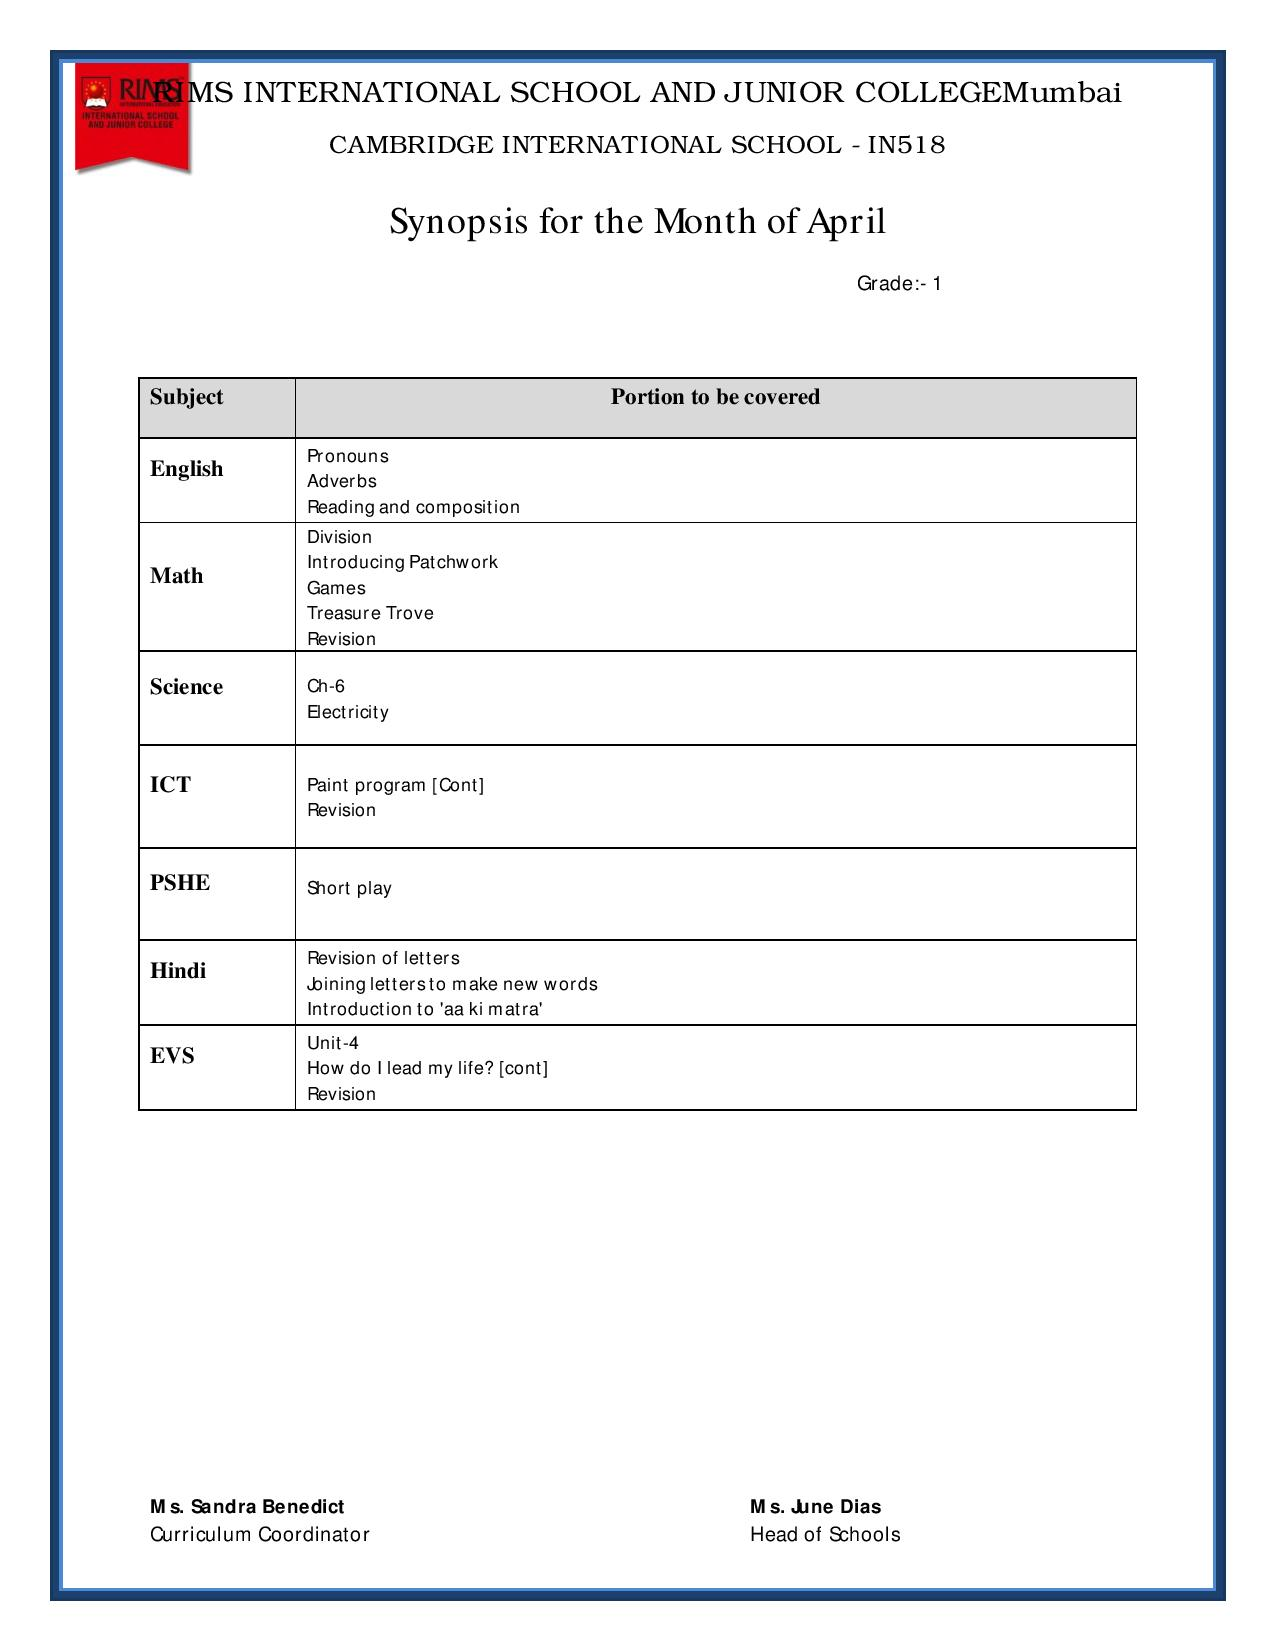 Synopsis for the Month of April - Grade 1